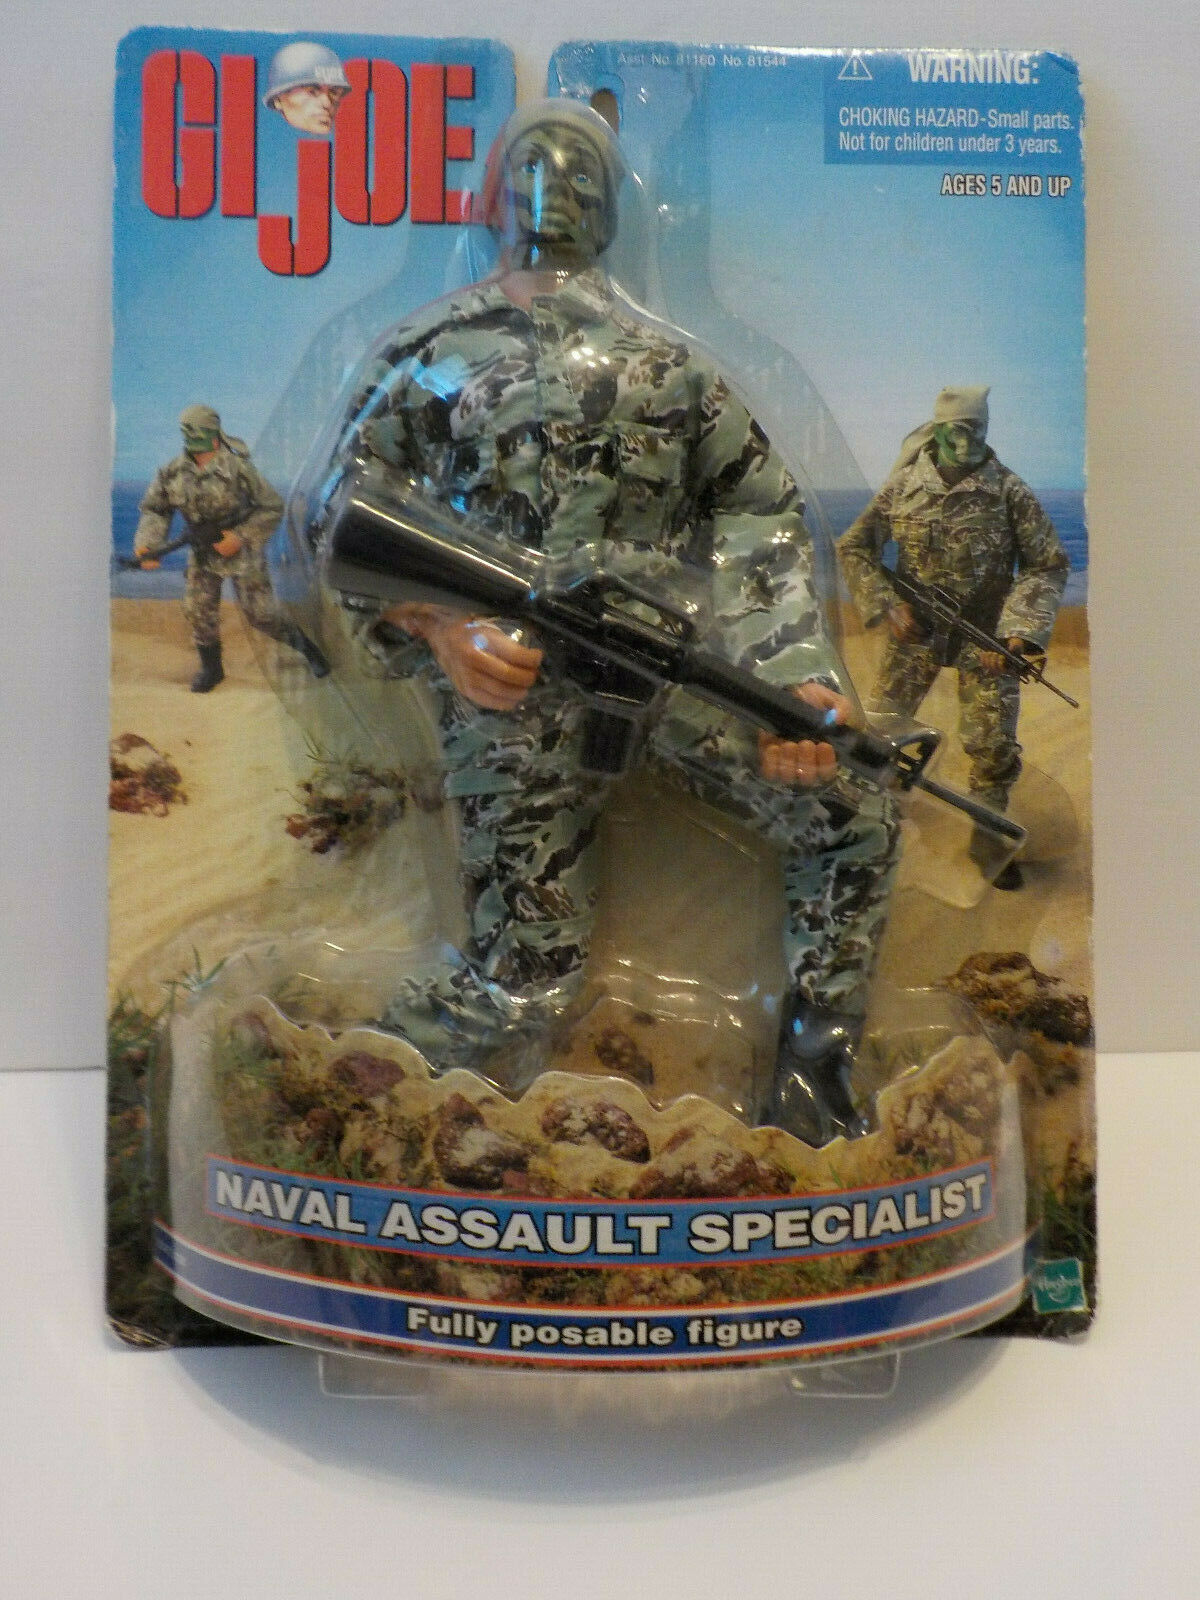 NEW GI JOE Naval Assault Specialist Fully Posable Figure Ages 5 and Up